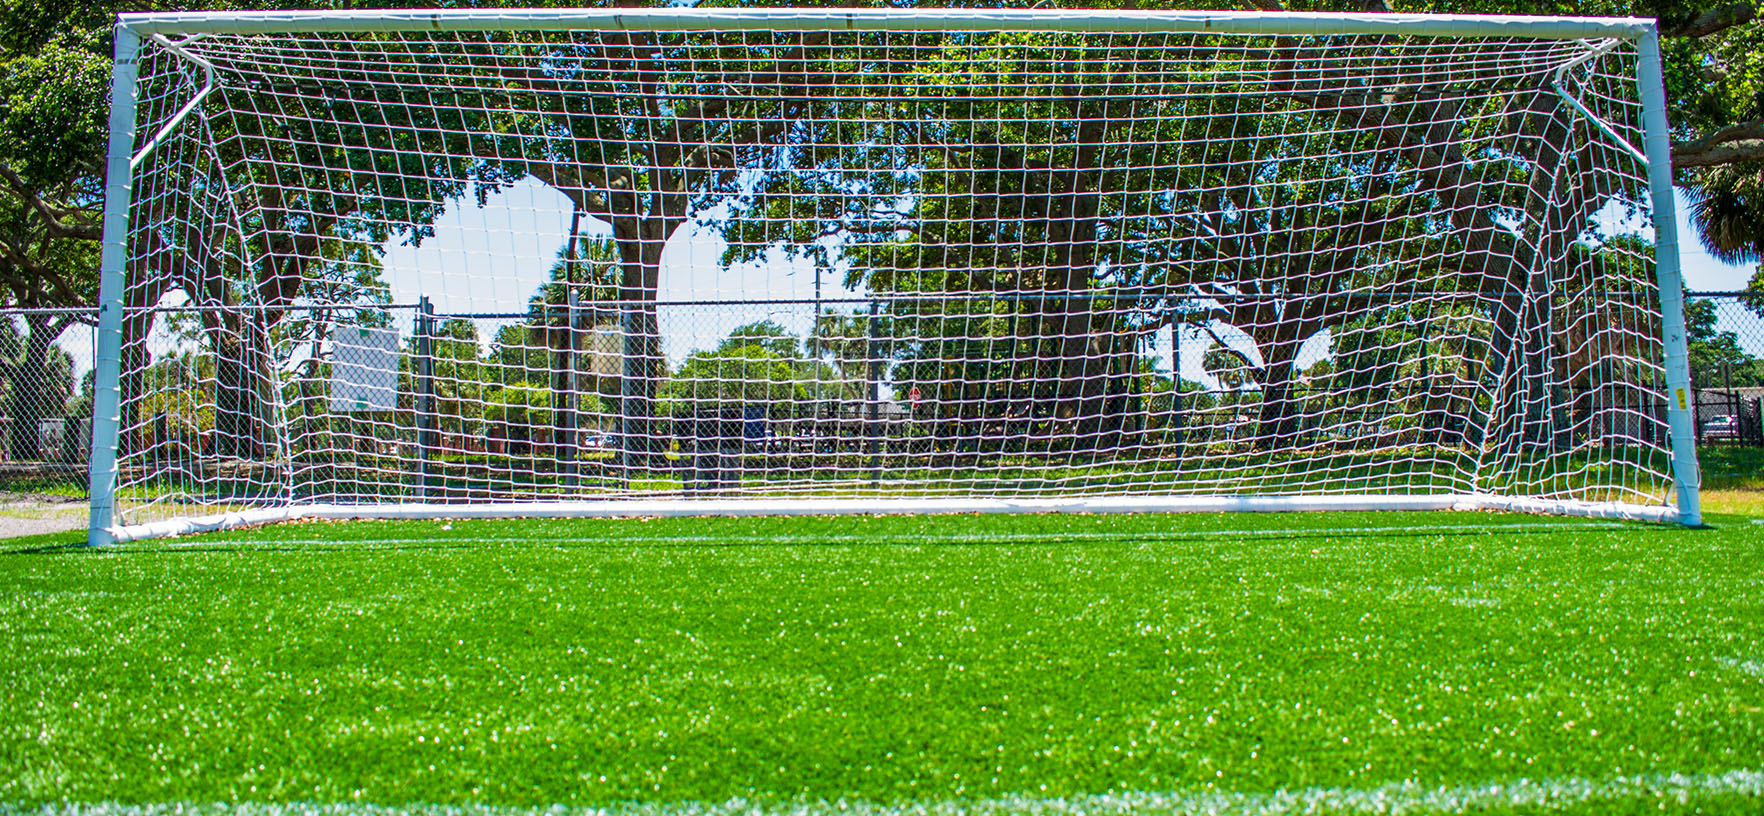 Lakewood Soccer Field Goal